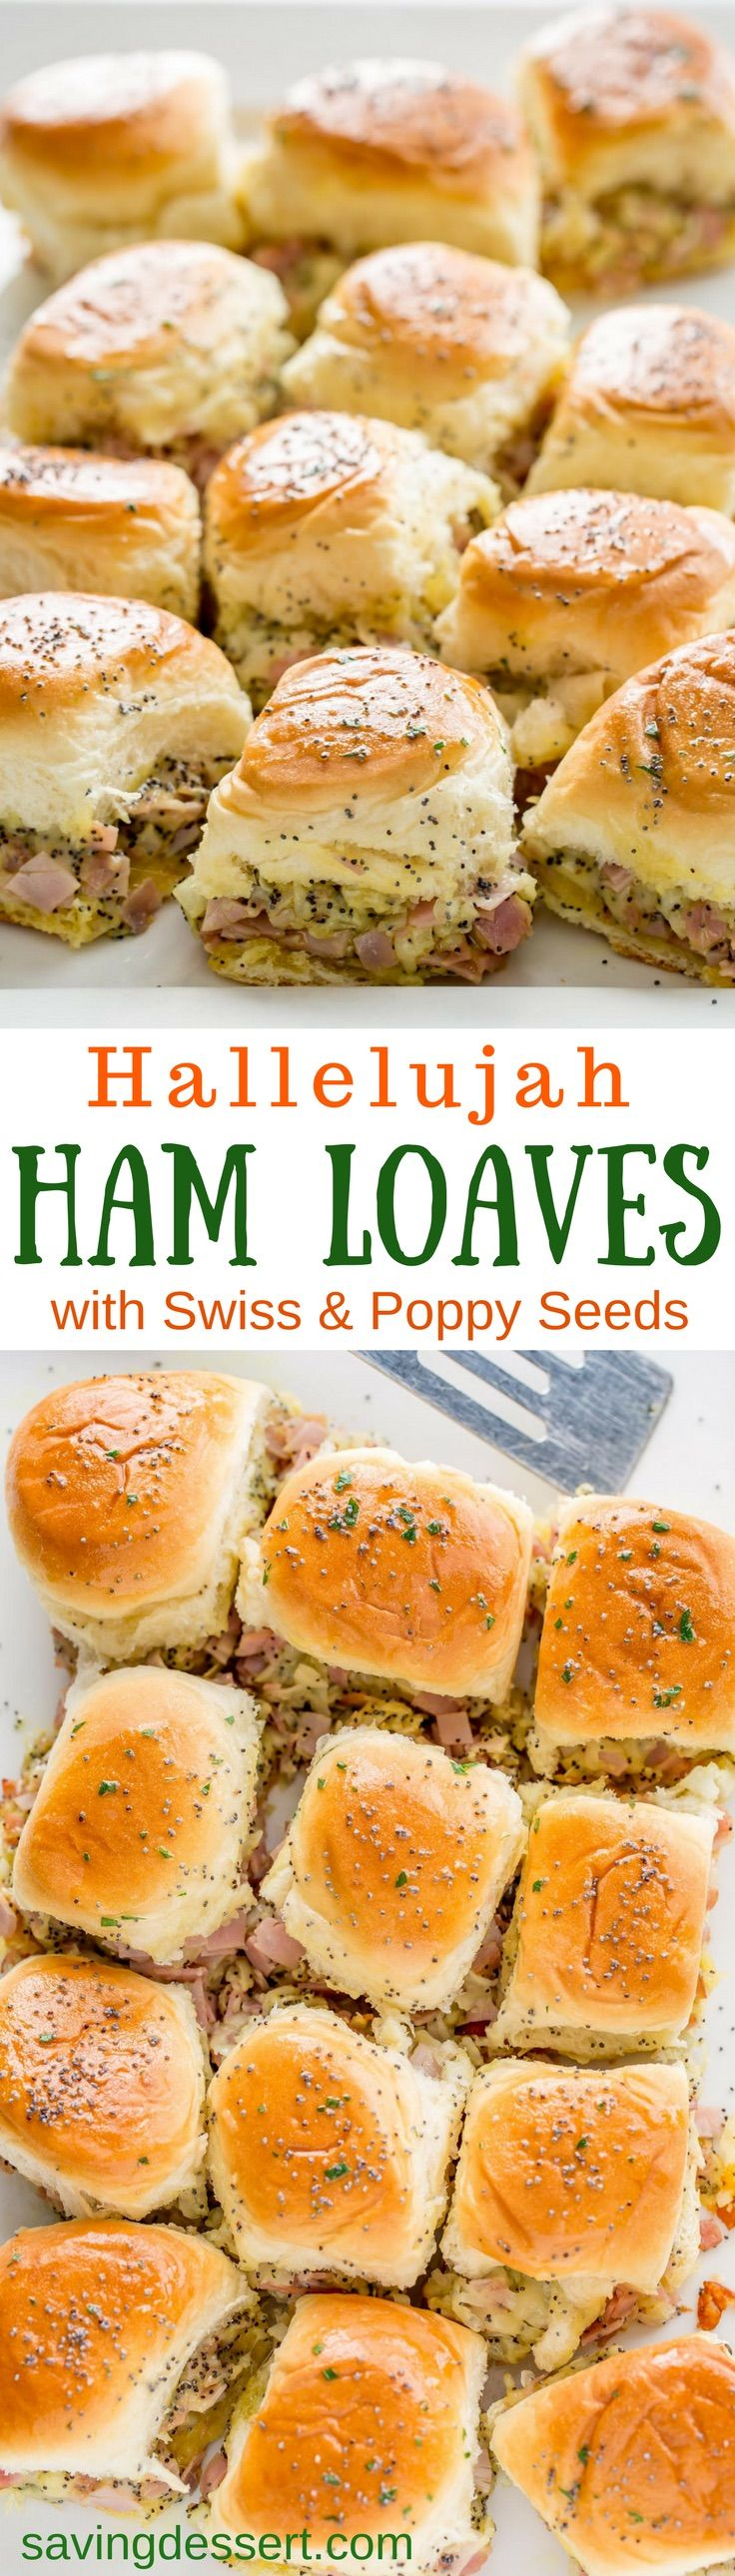 Hallelujah Ham Loaves (also known as ham and cheese sliders) - Stuffed with chopped sweet ham, plenty of shredded Swiss, diced onions and poppy seeds, these easy make-ahead hearty sliders are just the thing for your office party, anytime get-together, or football-frenzied hoopla!